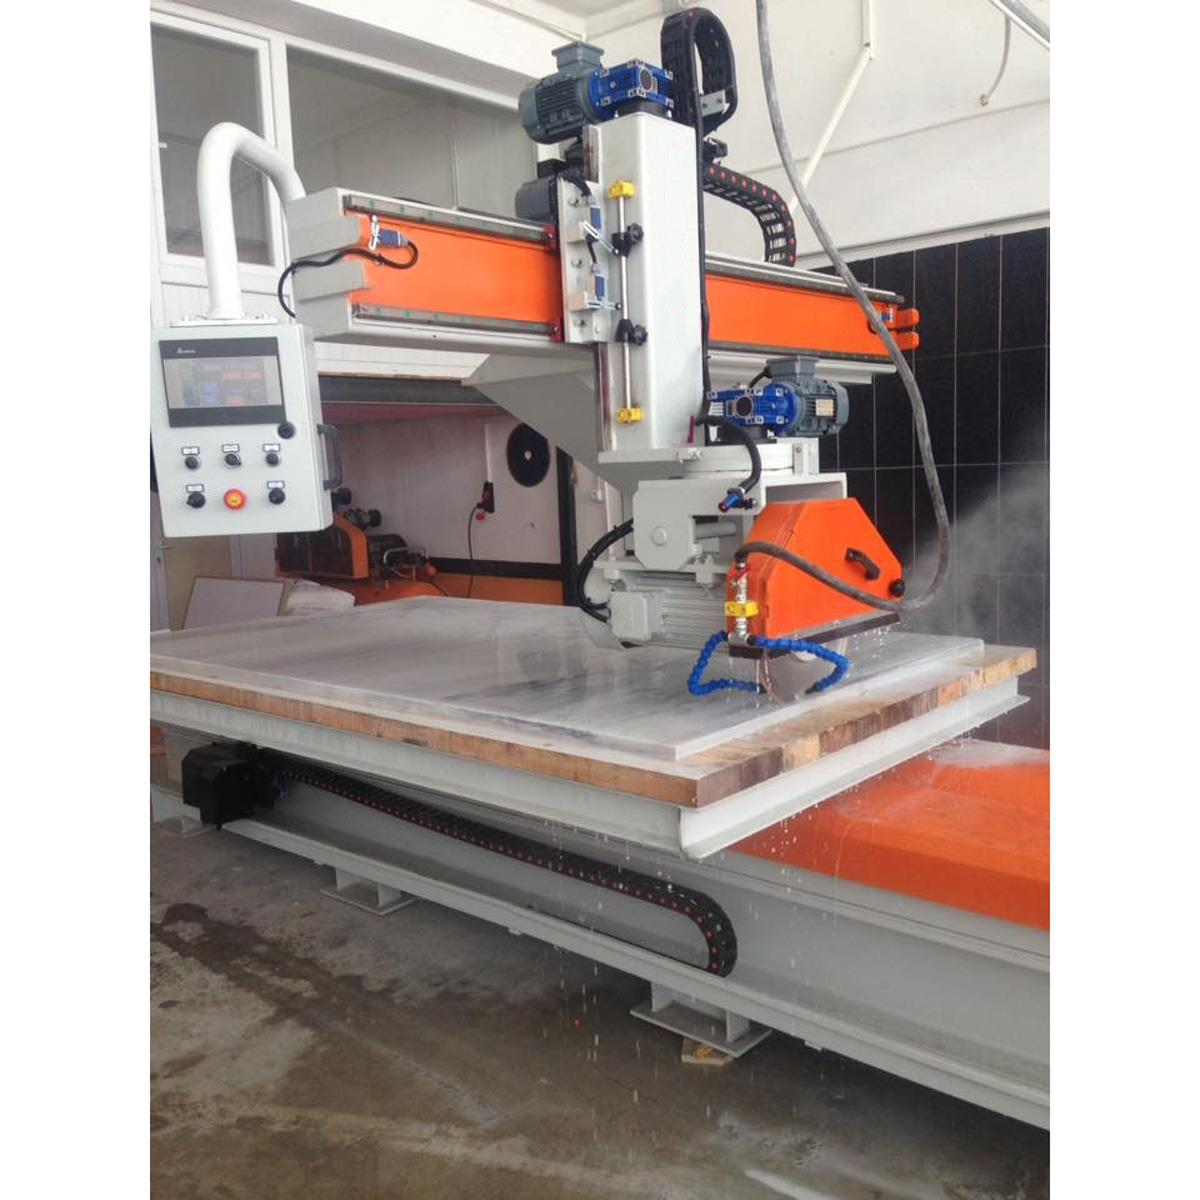 Schind 16403 Plc Marble Stone And Granite Cutting